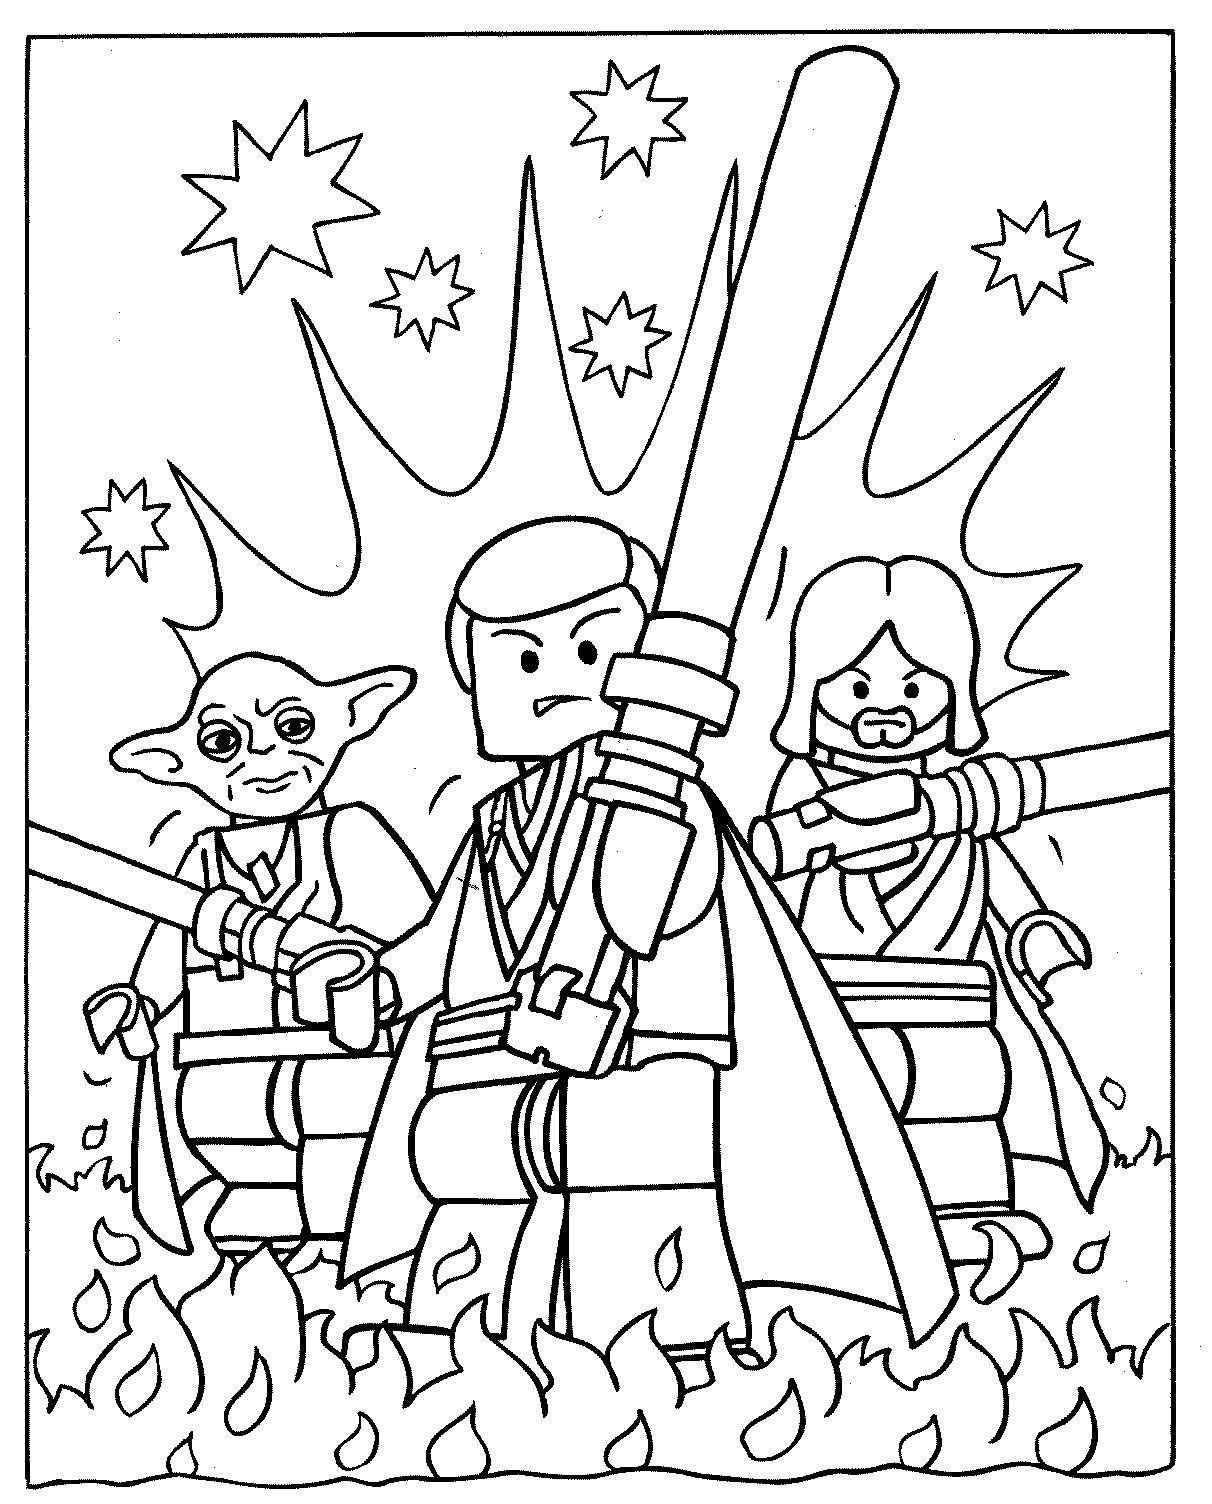 Lego coloring pages to print lego coloring pages lego darth - Lego Coloring Pages To Print Coloring Pages Pictures Imagixs